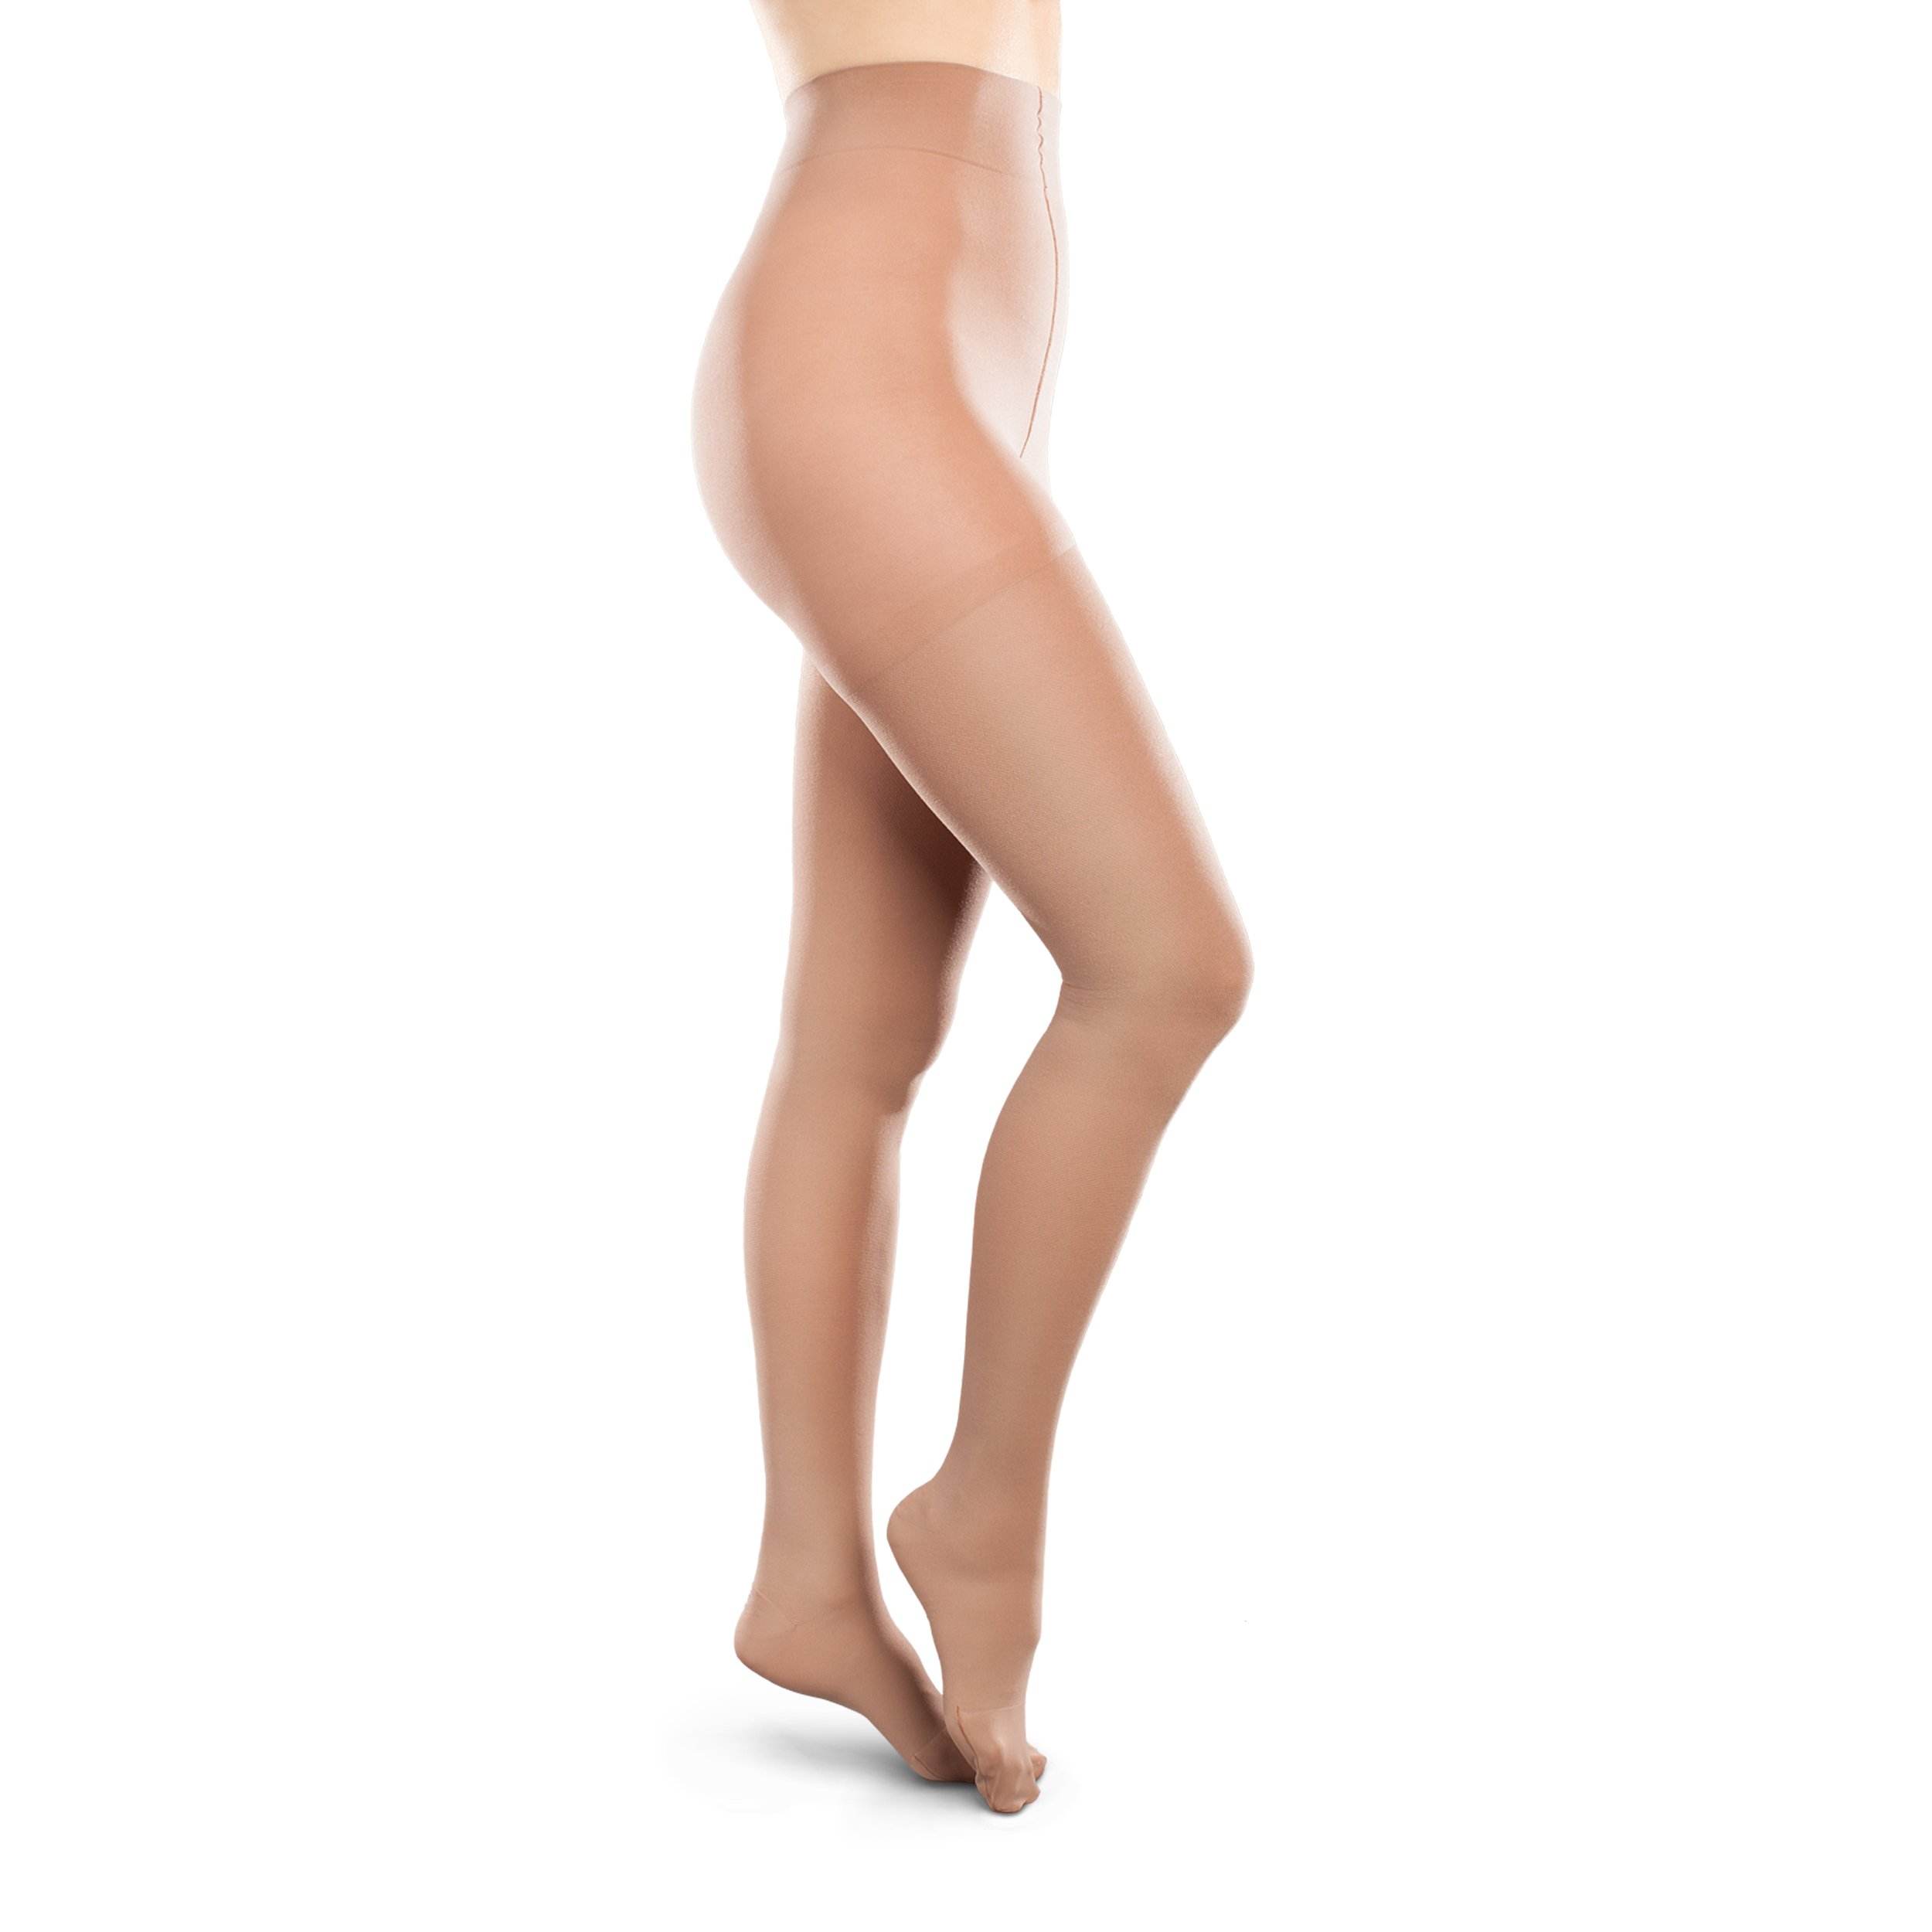 Therafirm Opaque Women's Support Pantyhose - Moderate (20-30mmHg) Graduated Compression Hosiery (Sand, Medium Long)